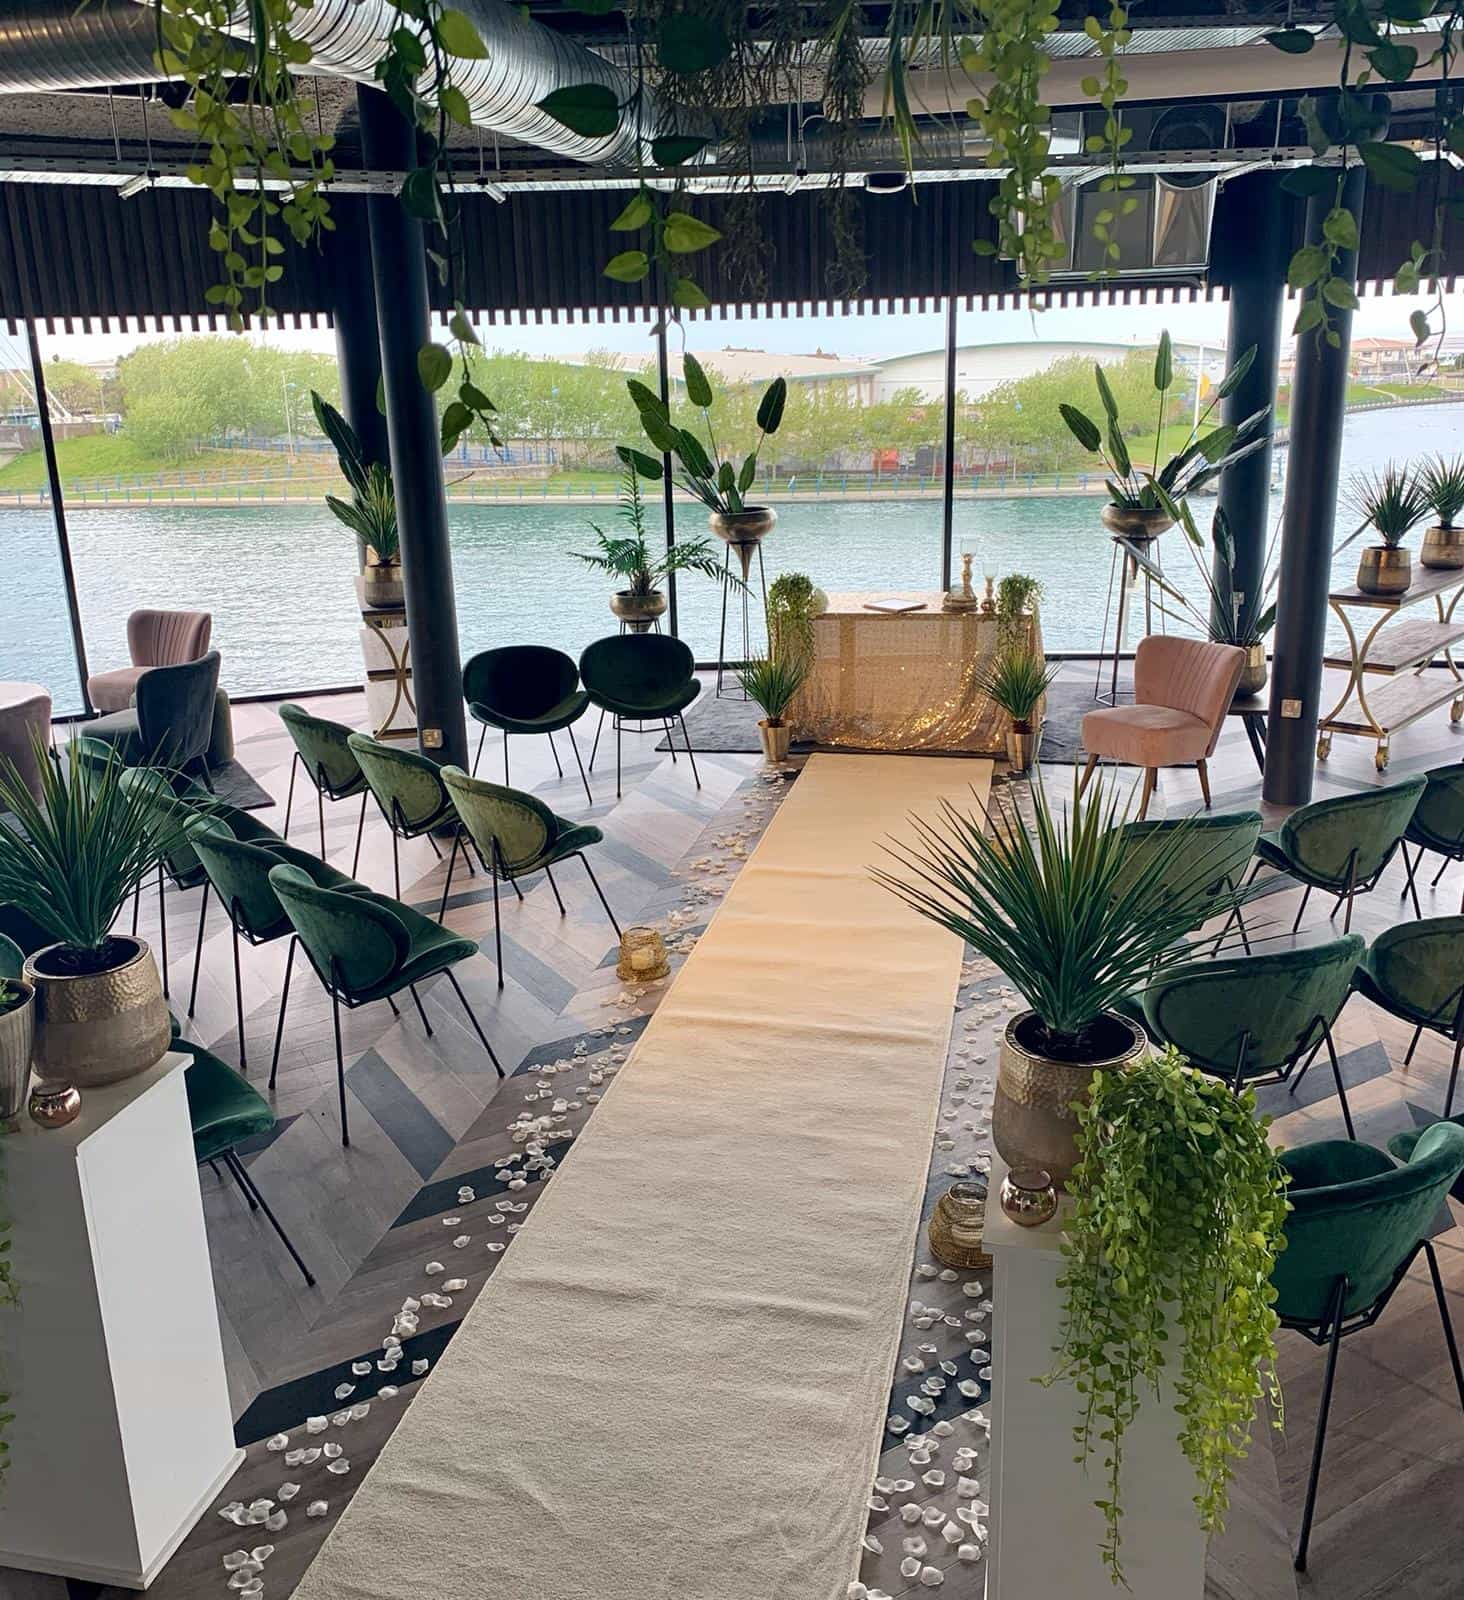 Wedding ceremony with rustic green decor and white aisle runner at Bliss hotel, Southport